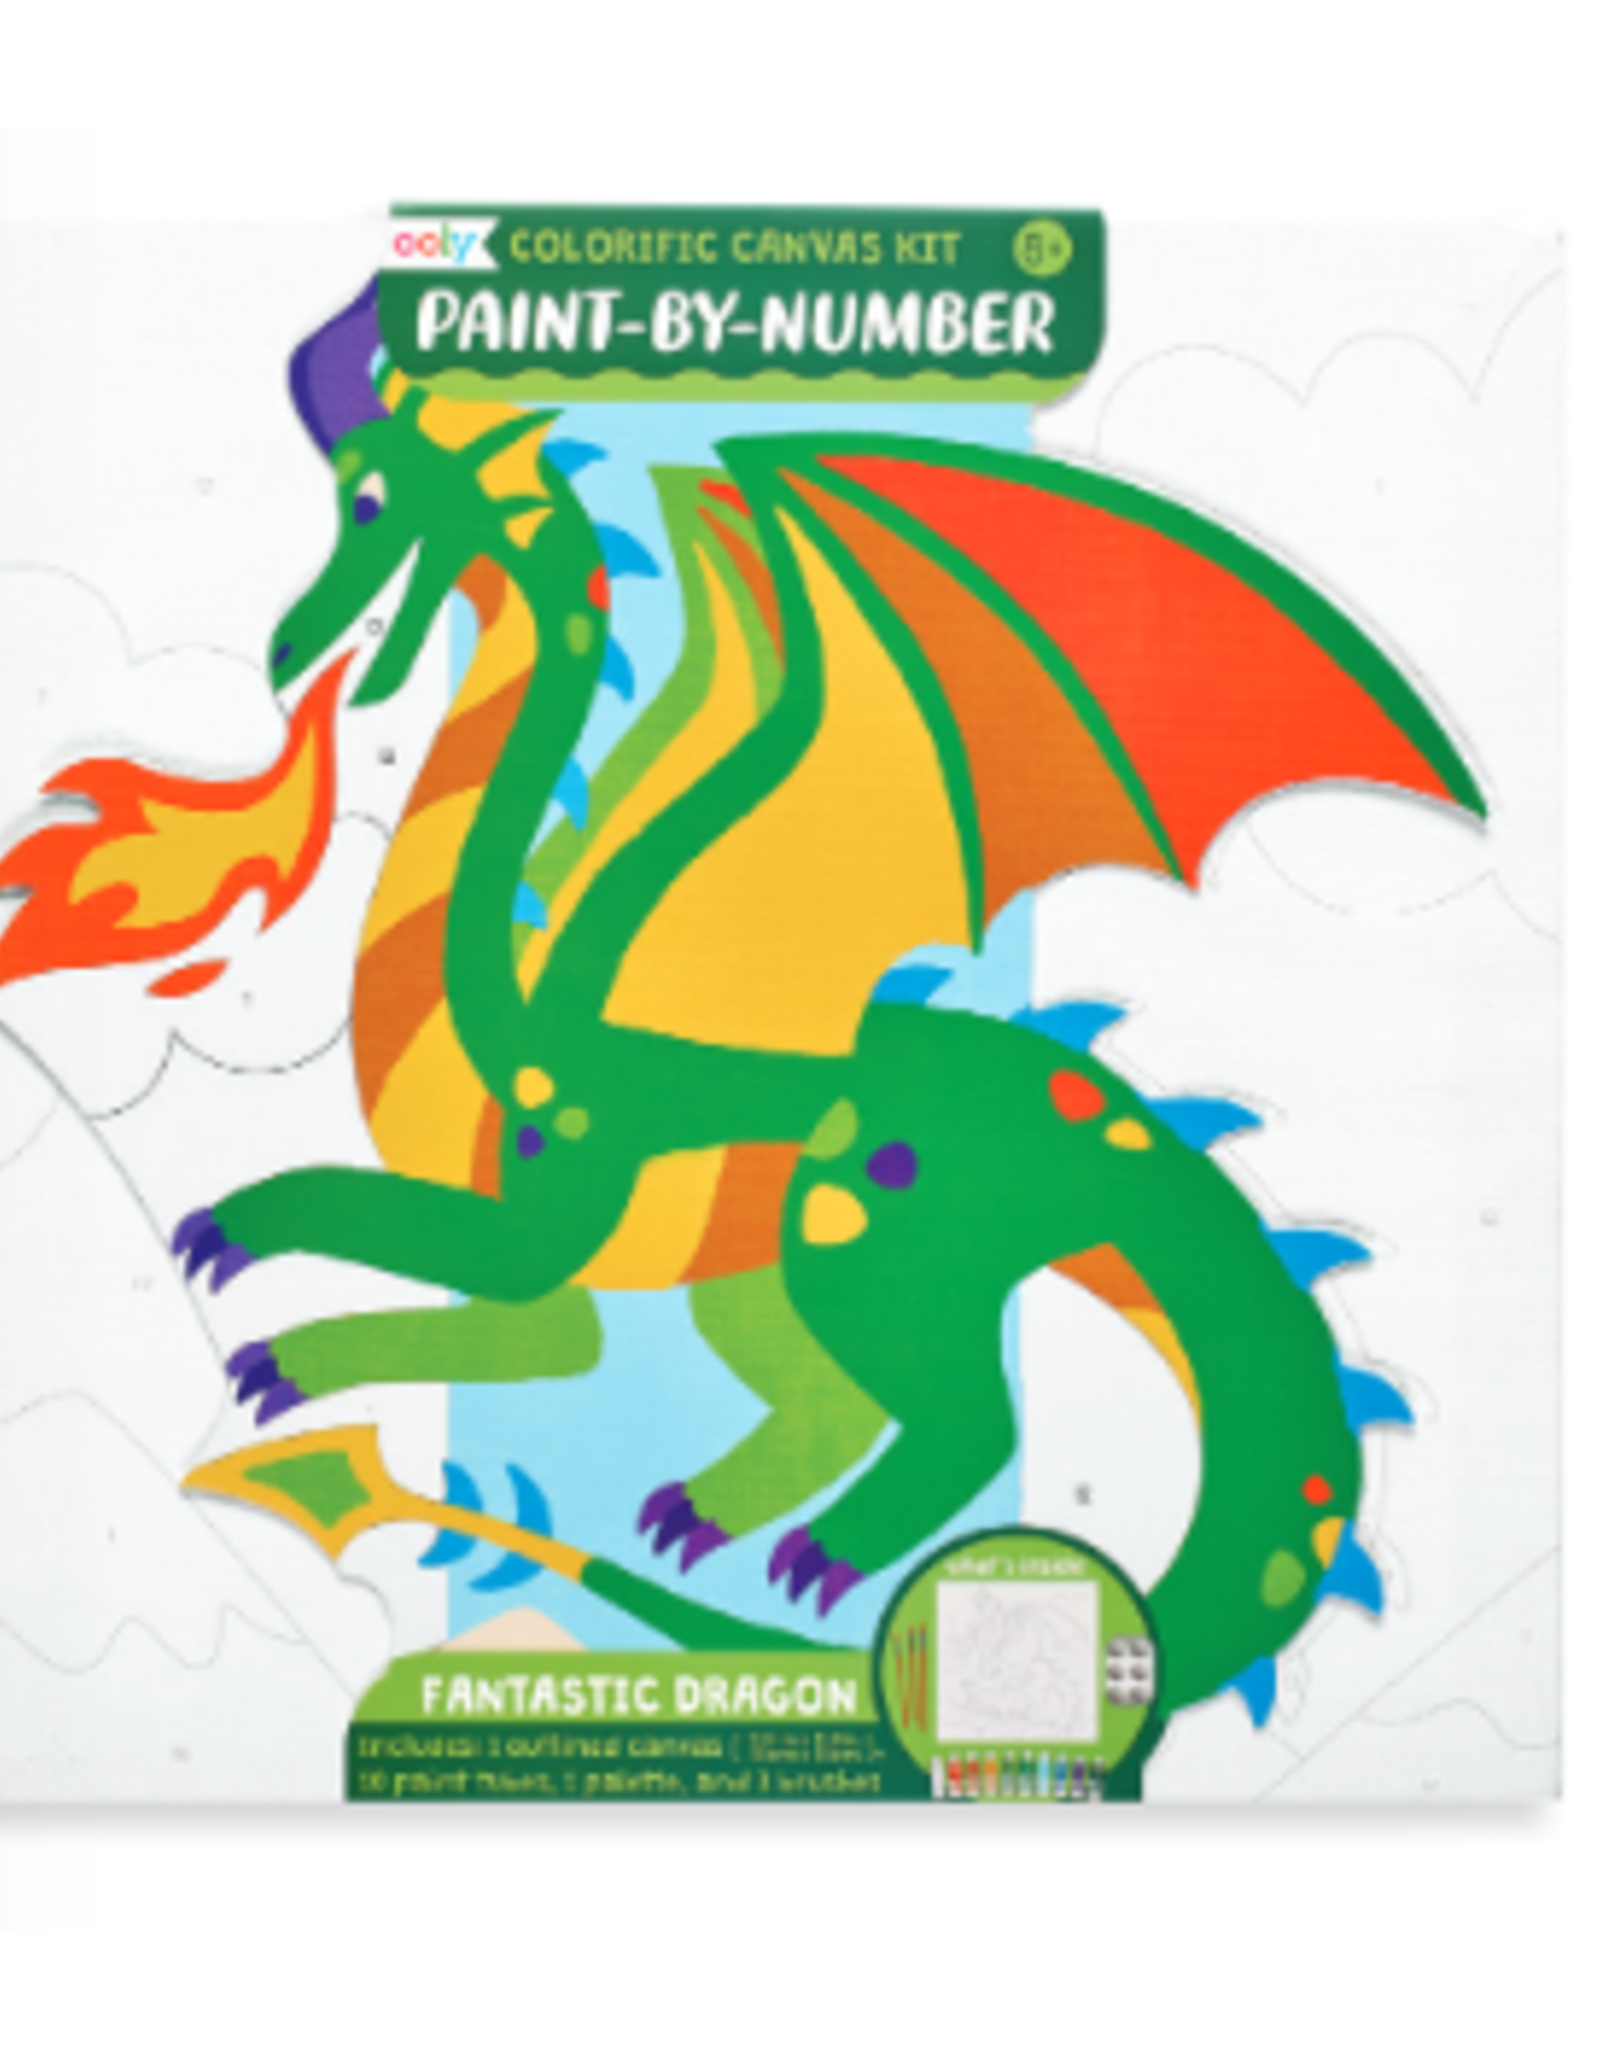 Ooly Colorific Canvas Kit Paint by Number - Fantastic Dragons